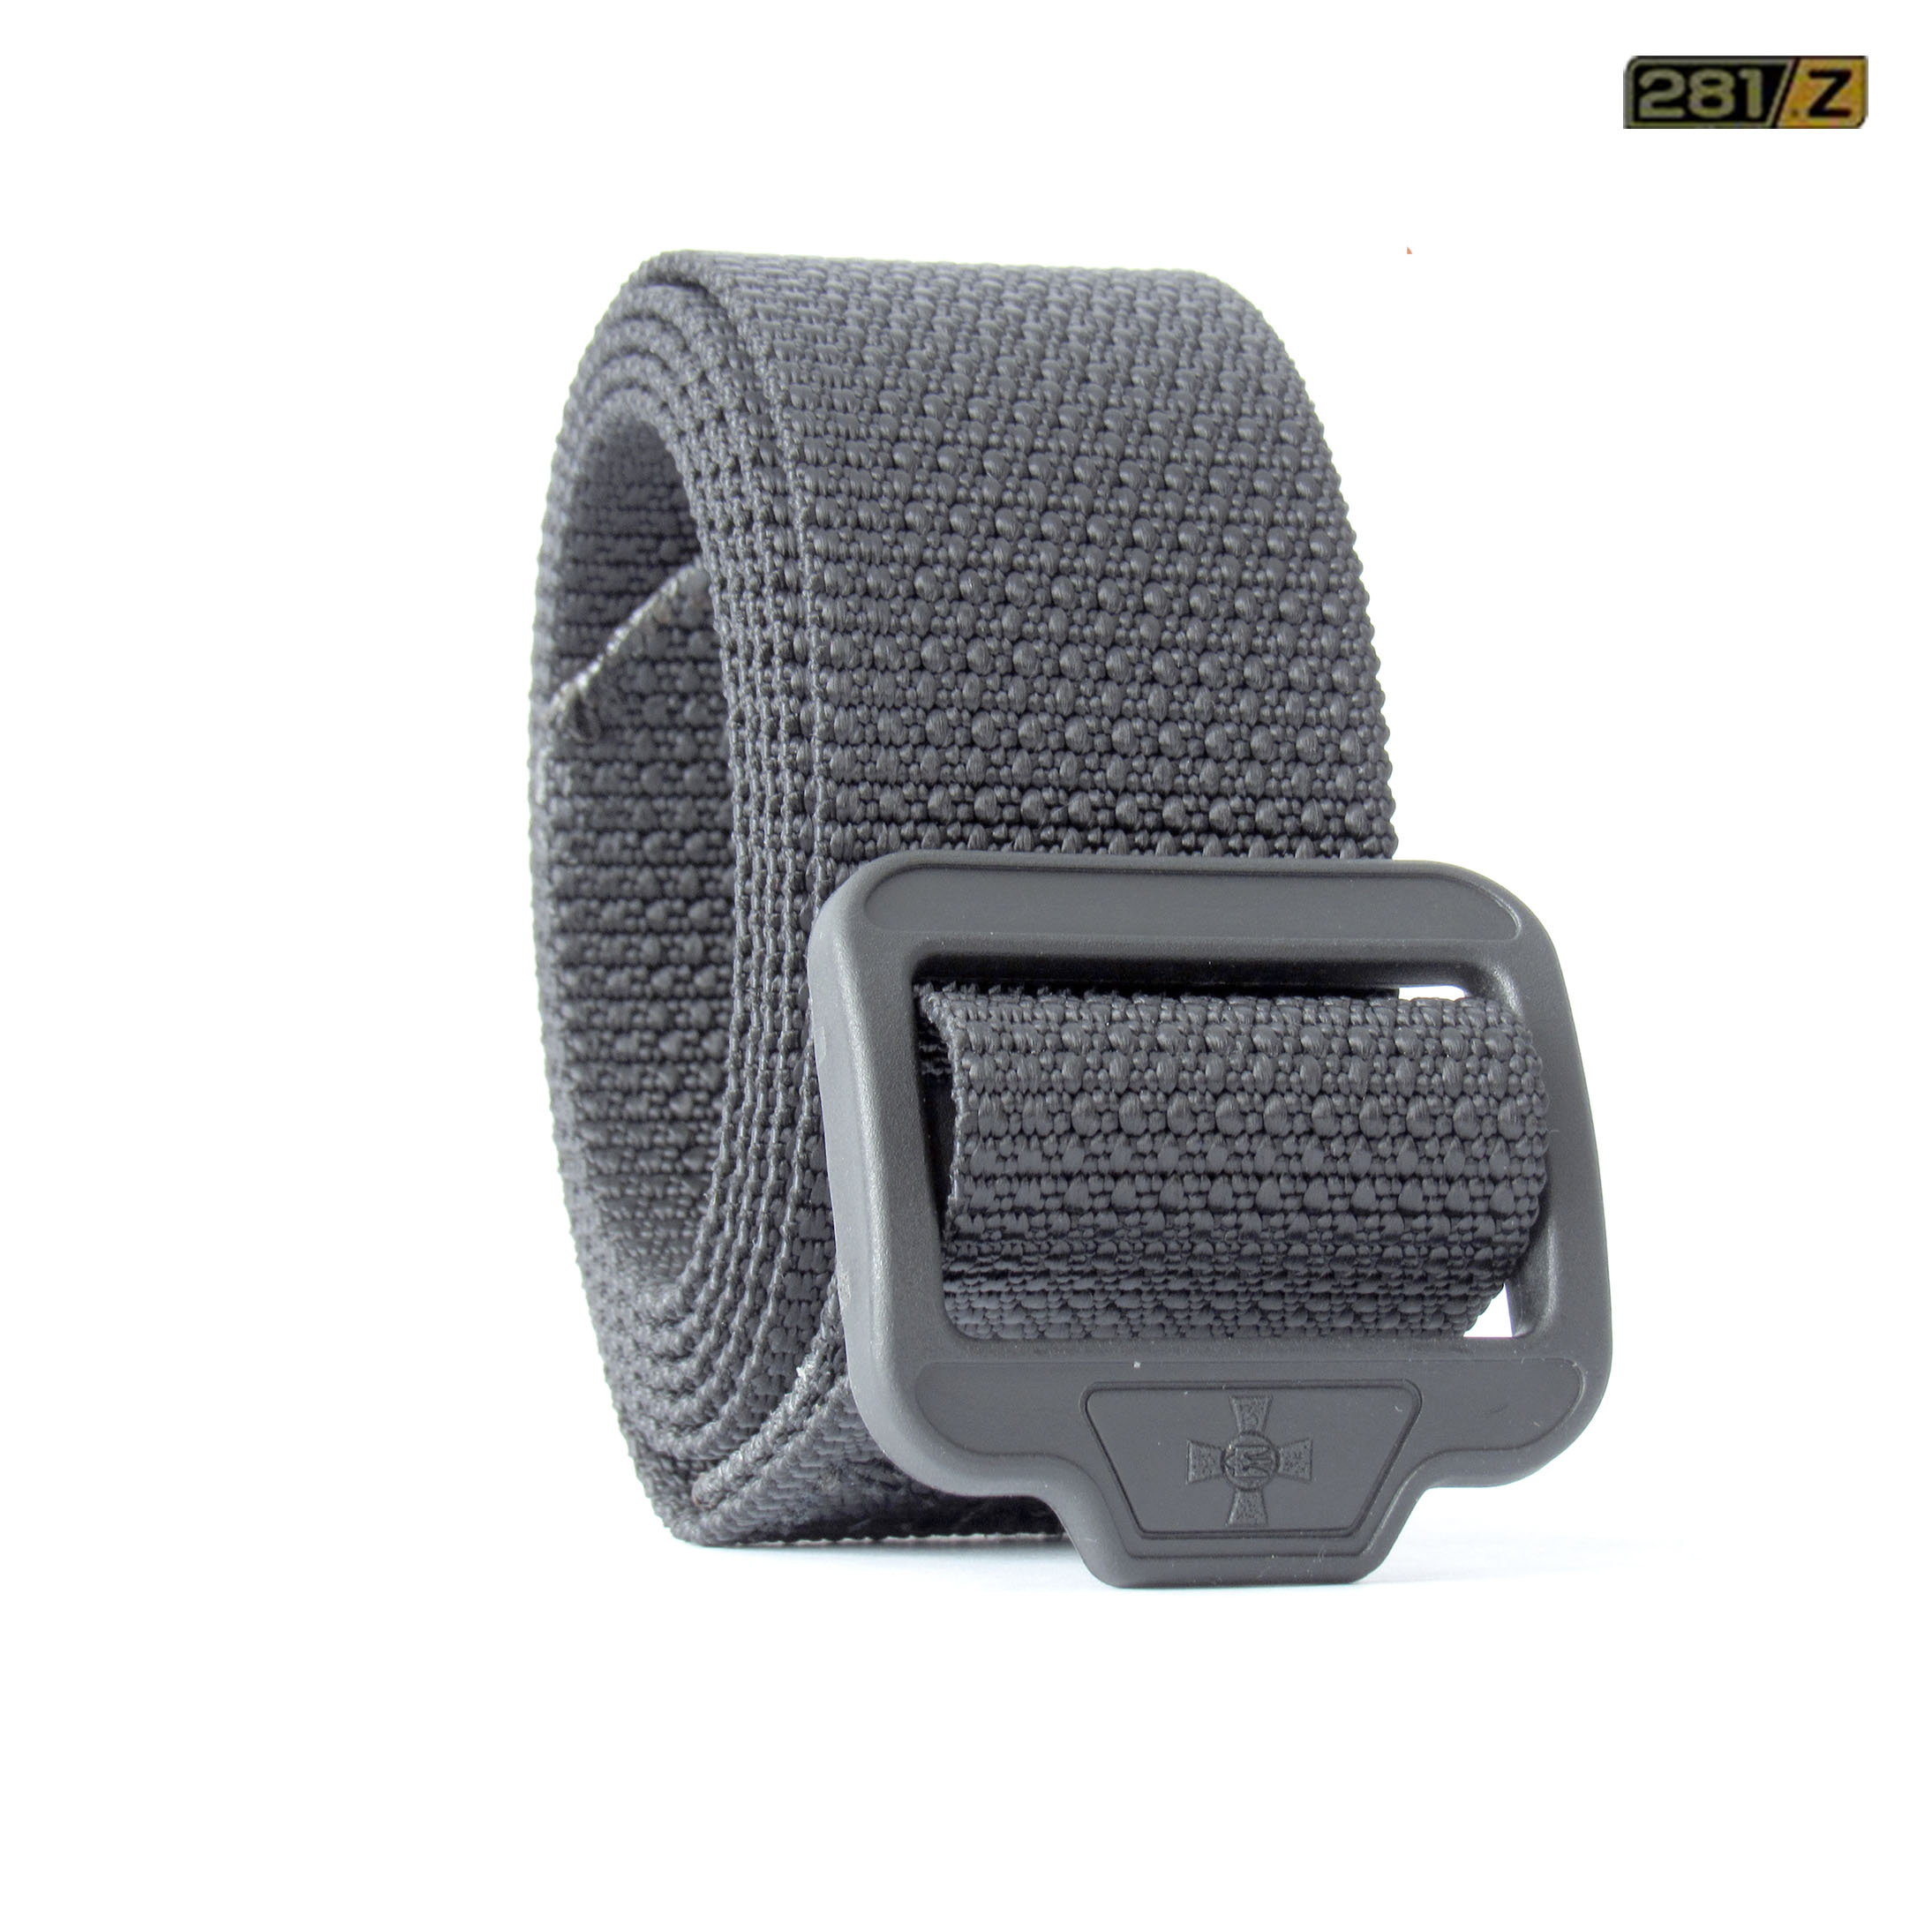 Frogman Duty Belt with UA logo